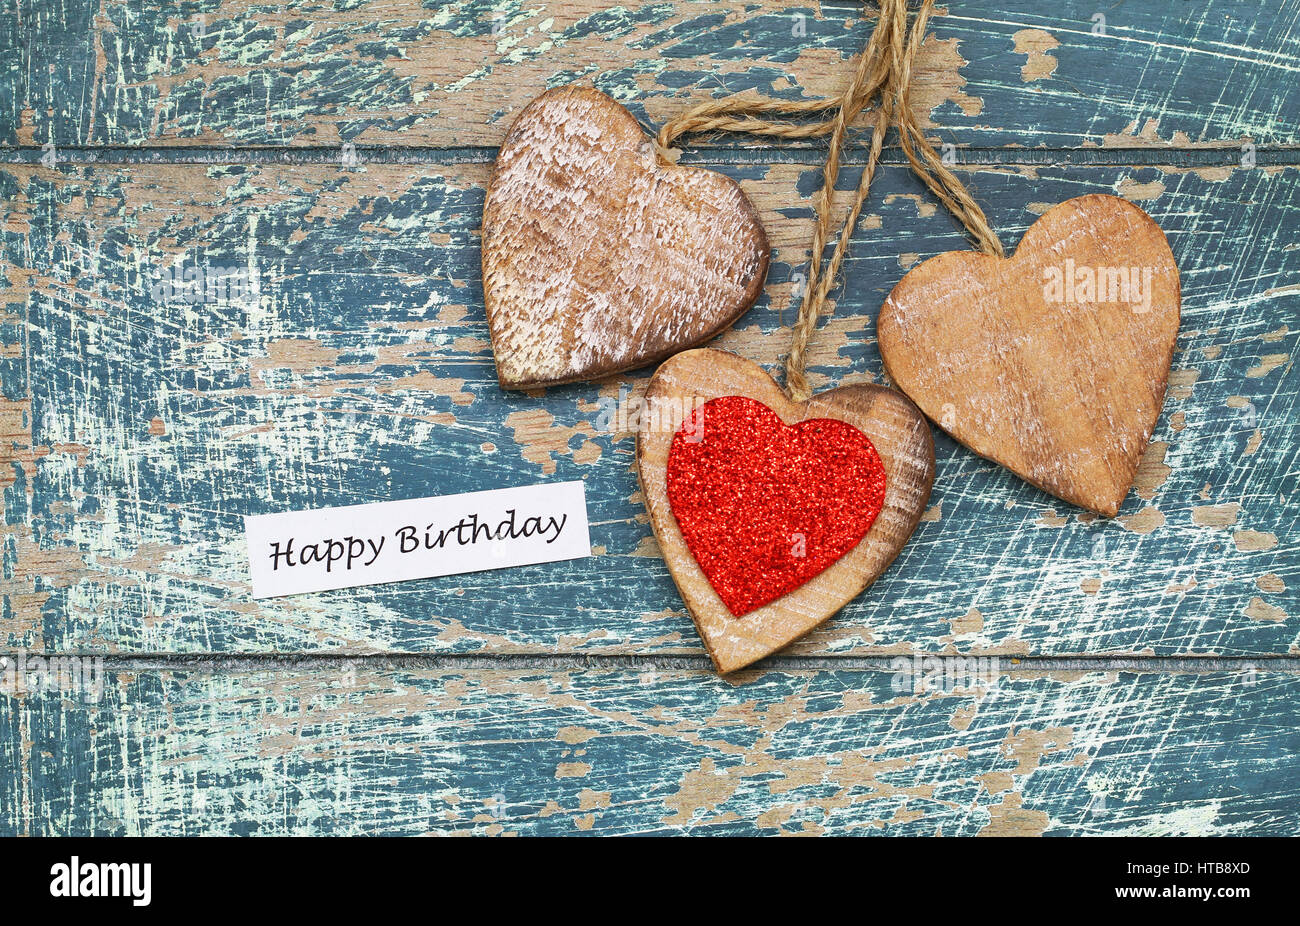 Happy Birthday Card With Wooden Hearts On Rustic Surface